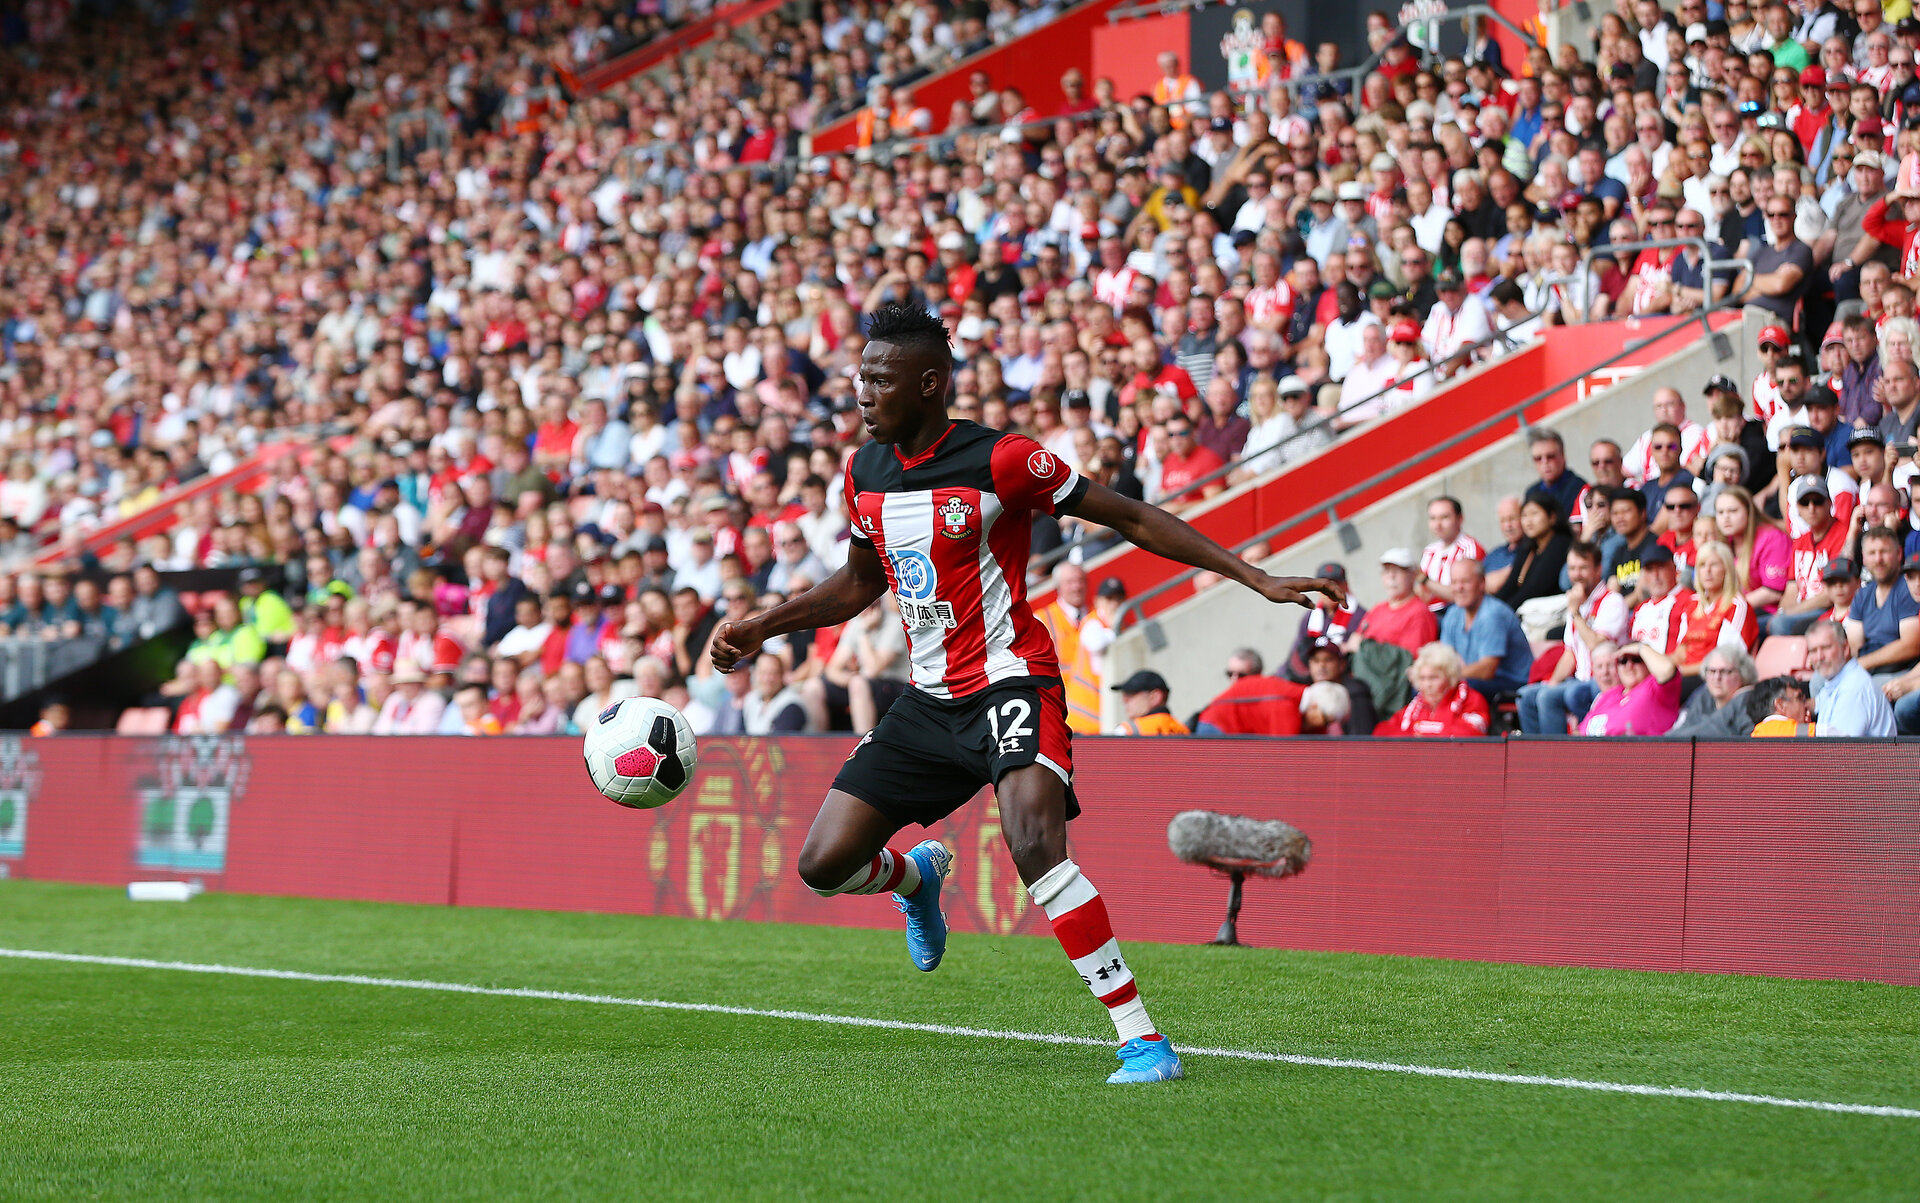 SOUTHAMPTON, ENGLAND - AUGUST 17: Moussa Djenepo of Southampton during the Premier League match between Southampton FC and Liverpool FC at St Mary's Stadium on August 17, 2019 in Southampton, United Kingdom. (Photo by Matt Watson/Southampton FC via Getty Images)